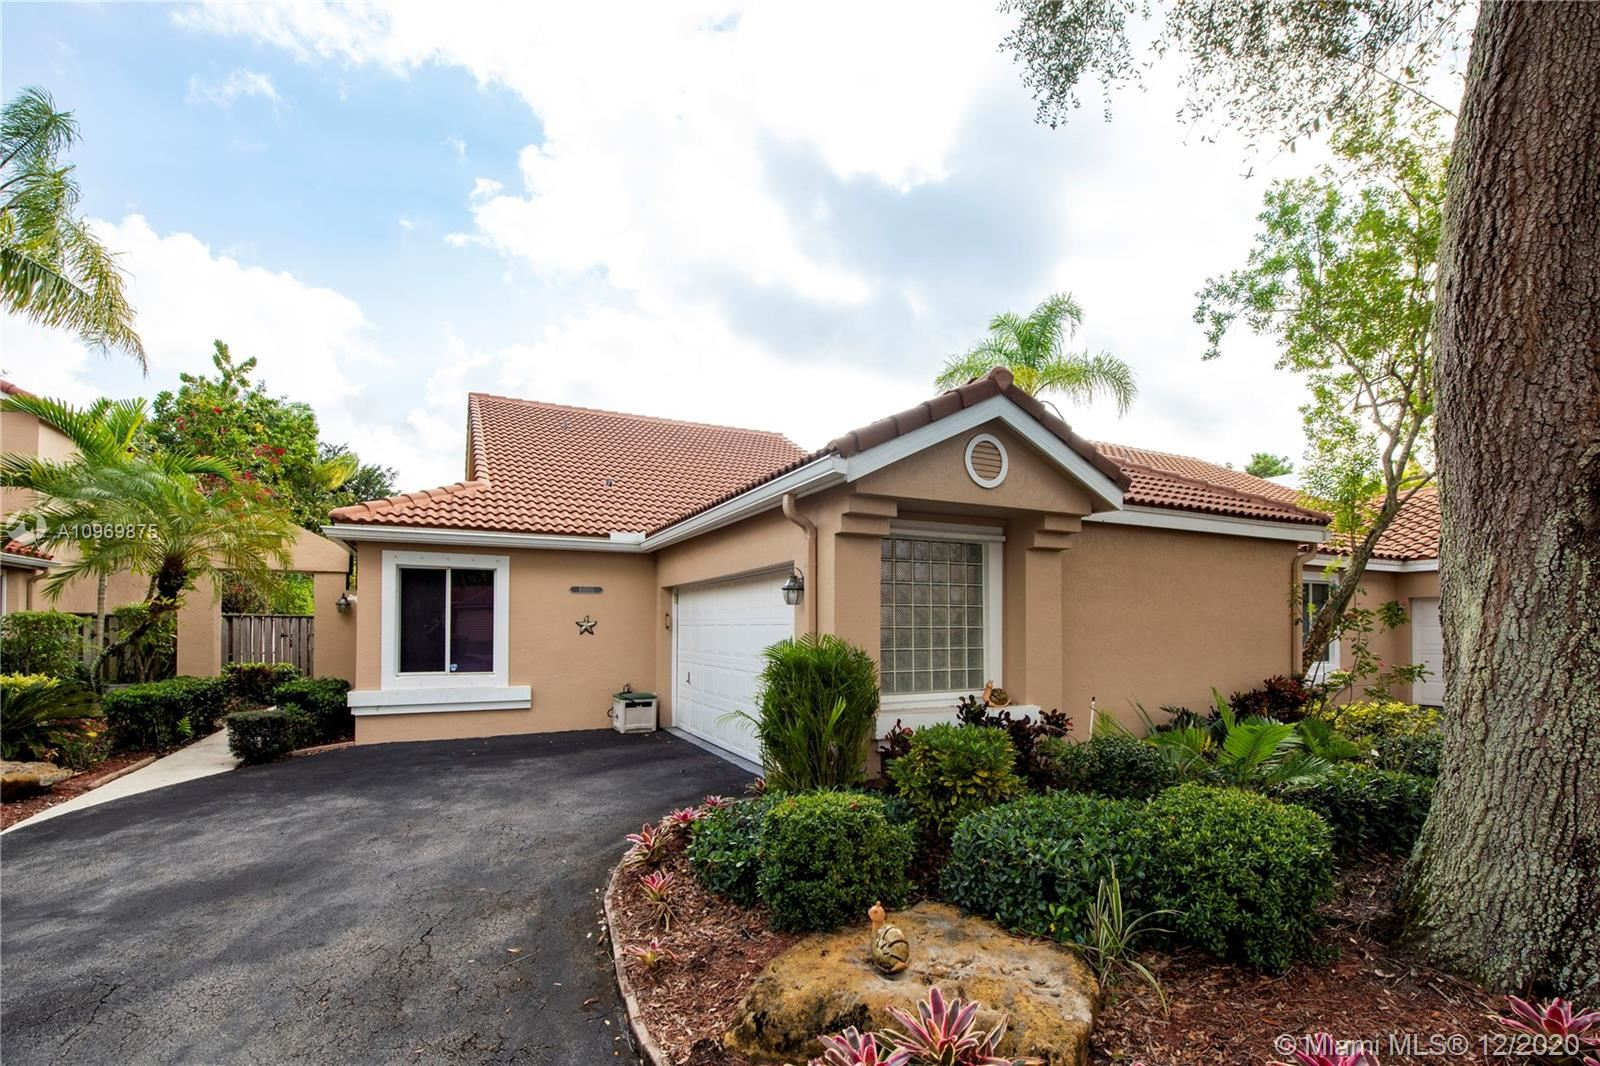 10000 NW 5th St, Plantation, FL 33324 - #: A10969875